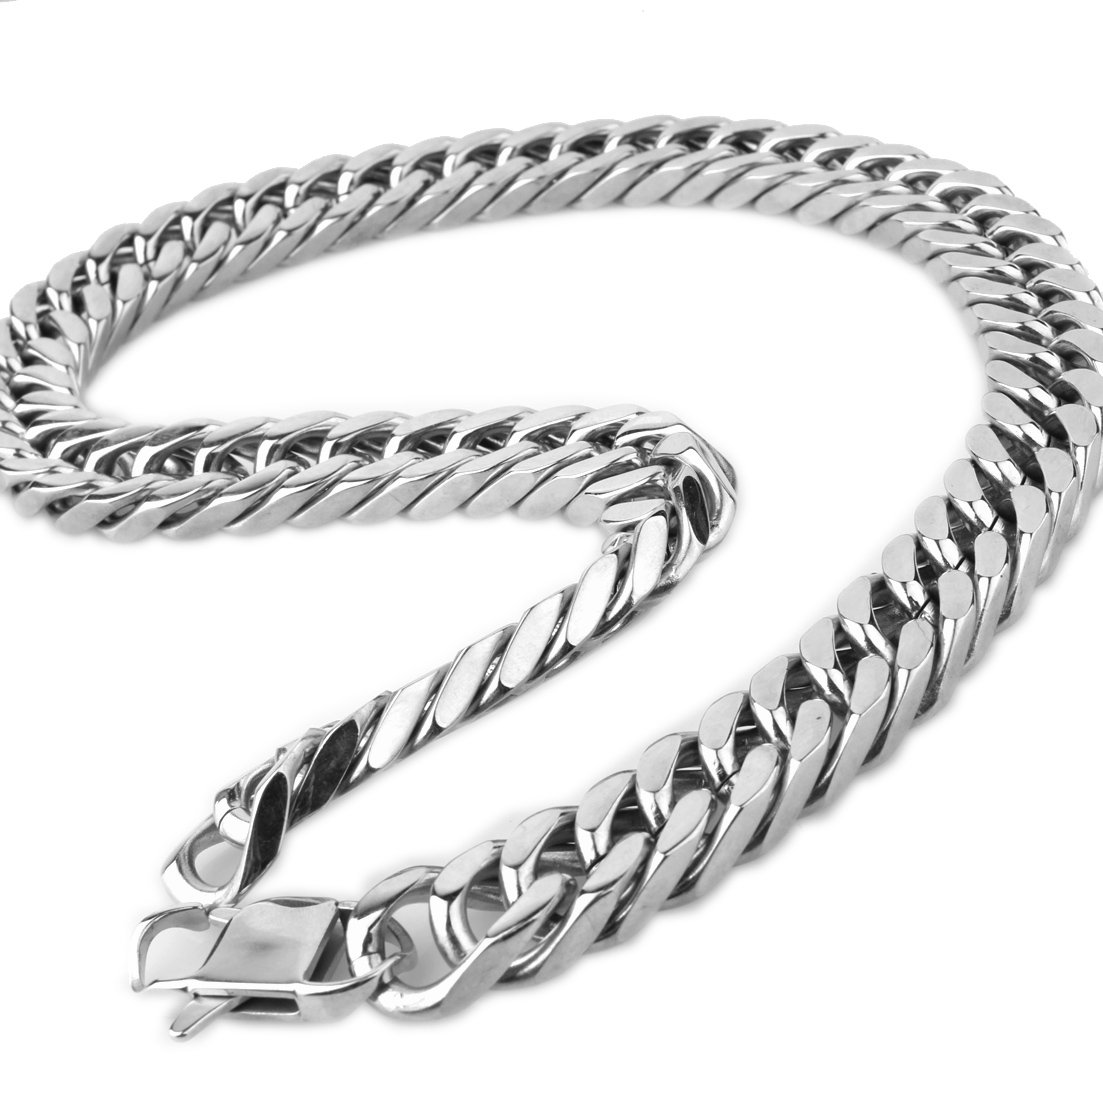 FANS JEWELRY Mens 17MM Heavy Polished 316L Stainless Steel Necklace Bracelet Cuban Curb Chain Link 7-40